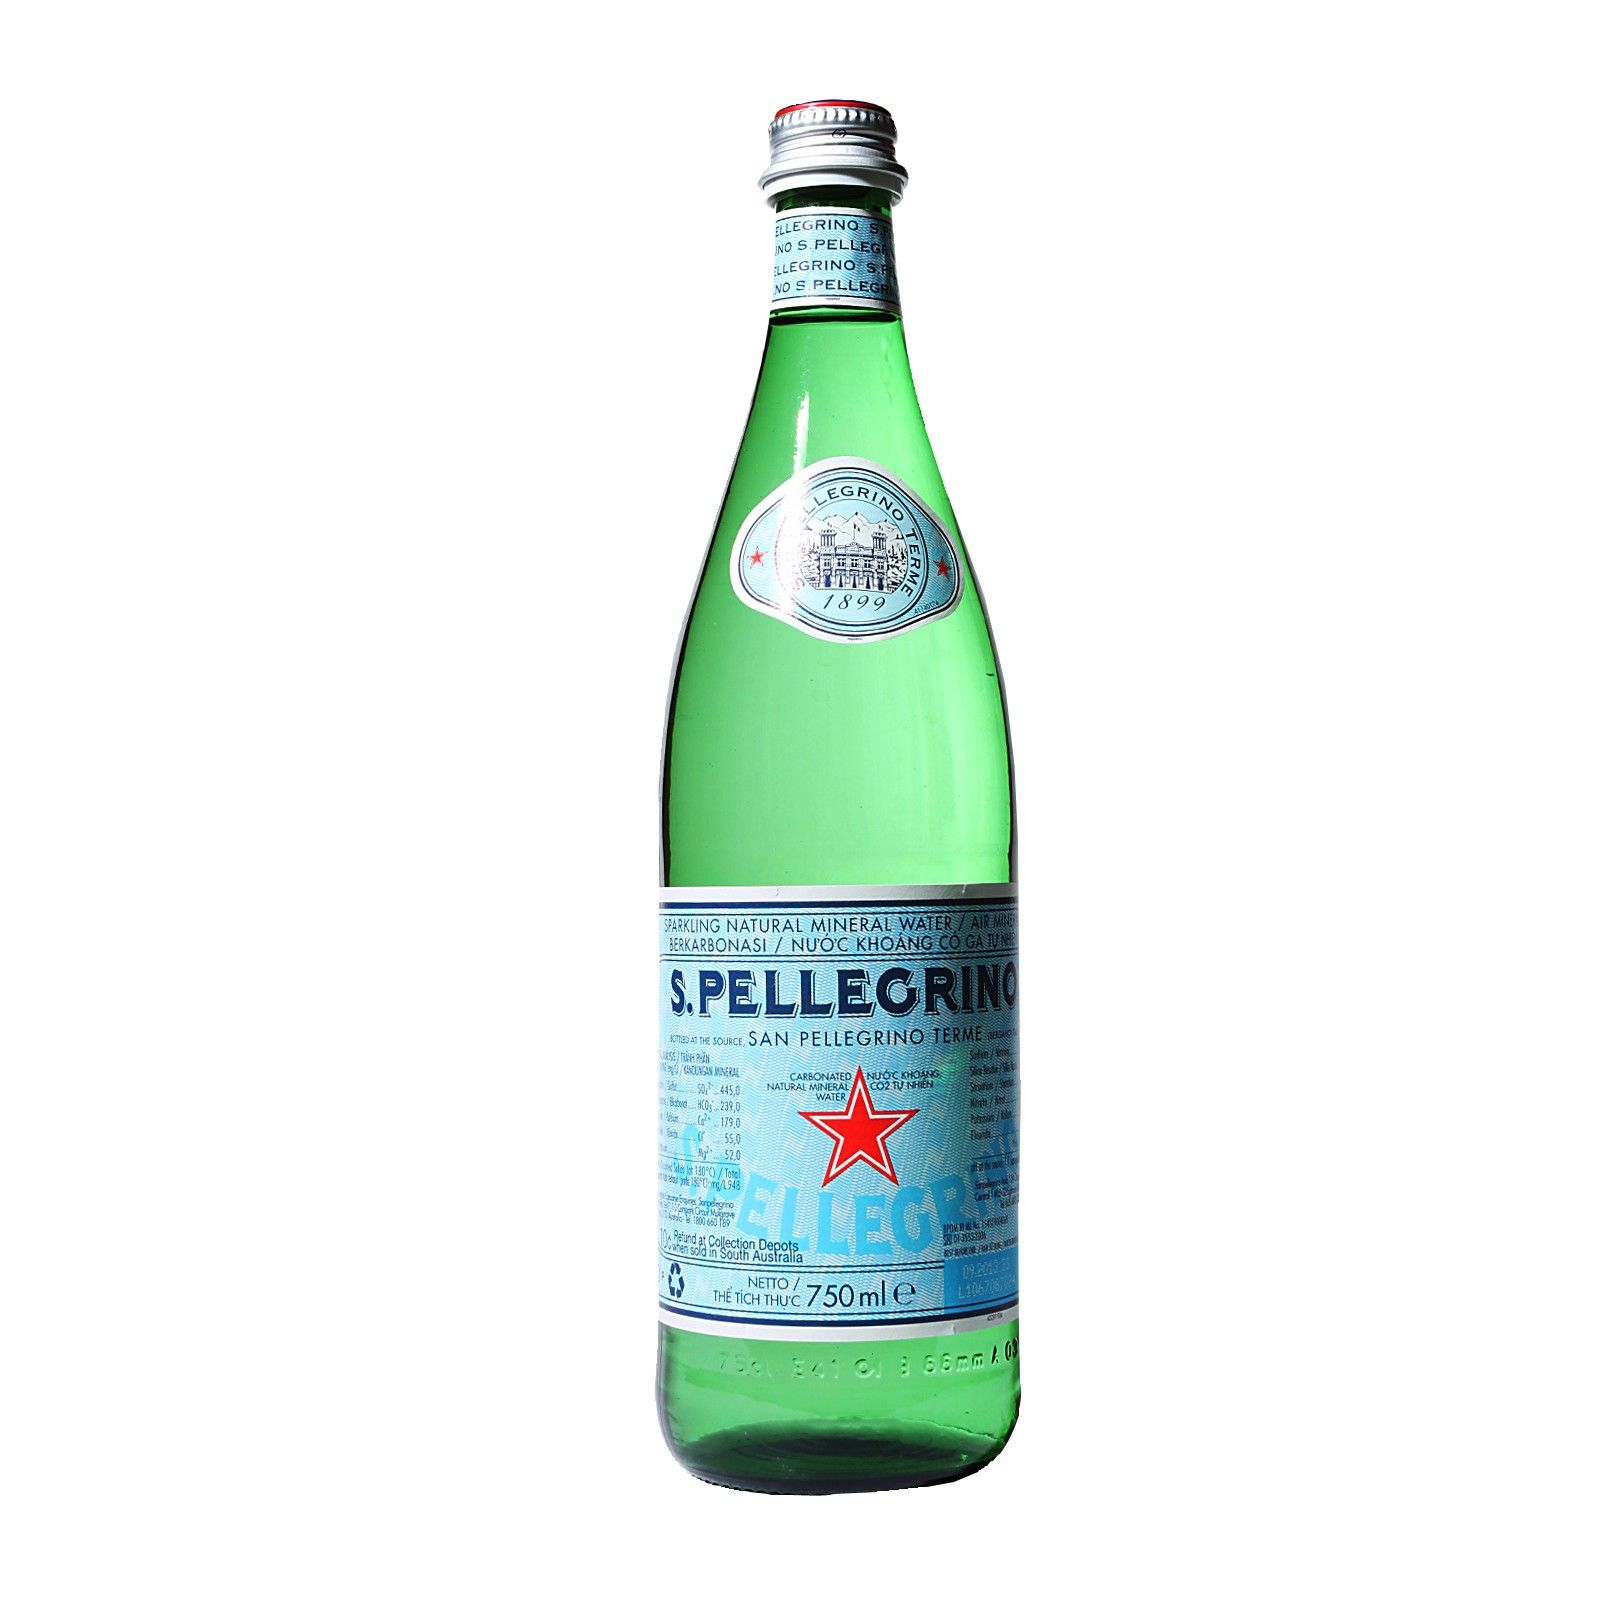 San Pellegrino Sparkling Natural Mineral Water Mineral